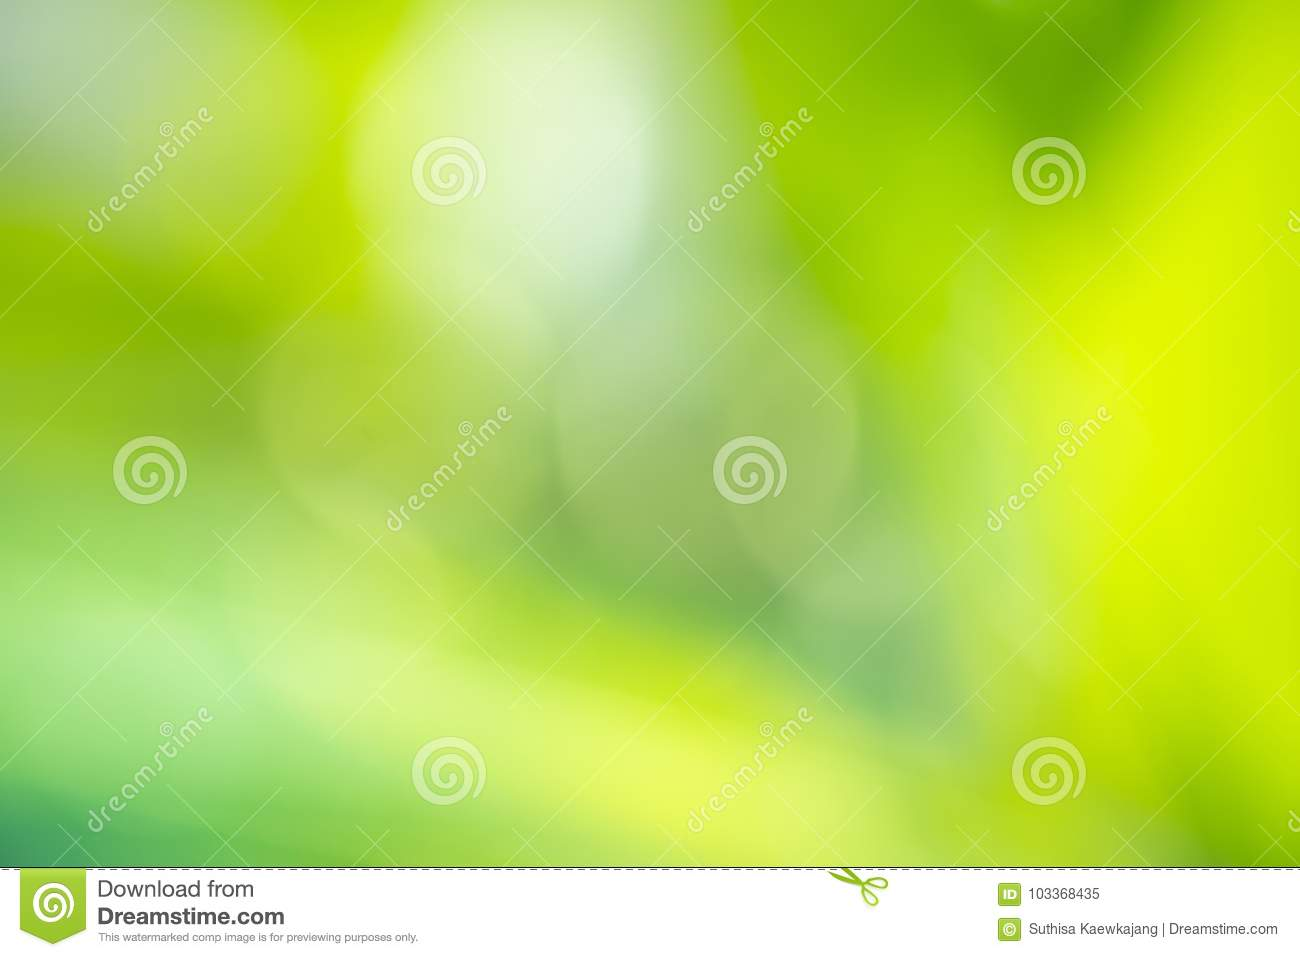 Green leaves blurred background and sunlight, spring season.